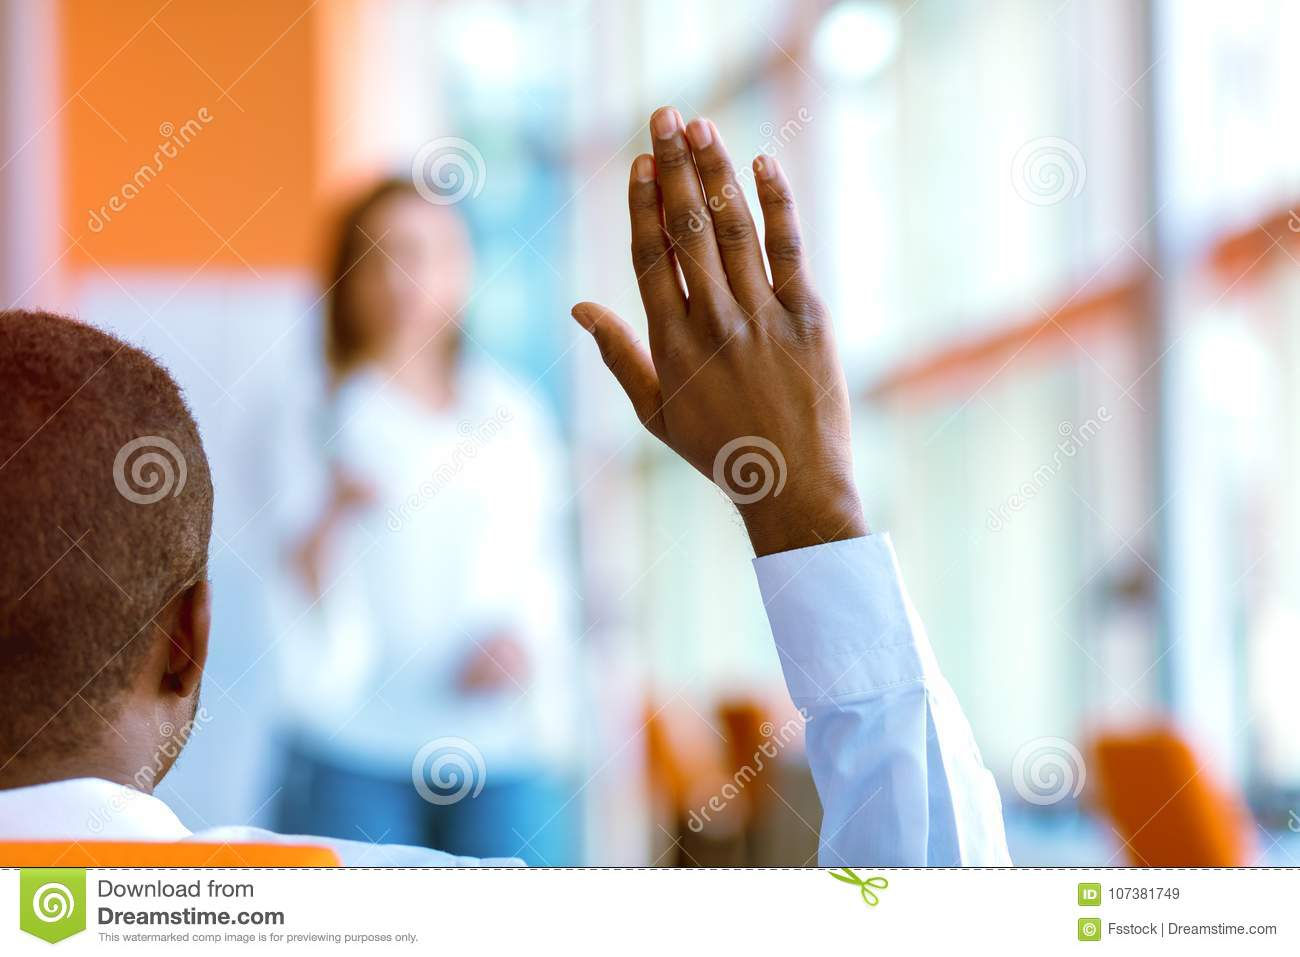 African american Business people Raising there Hand Up at a Conference to answer a question